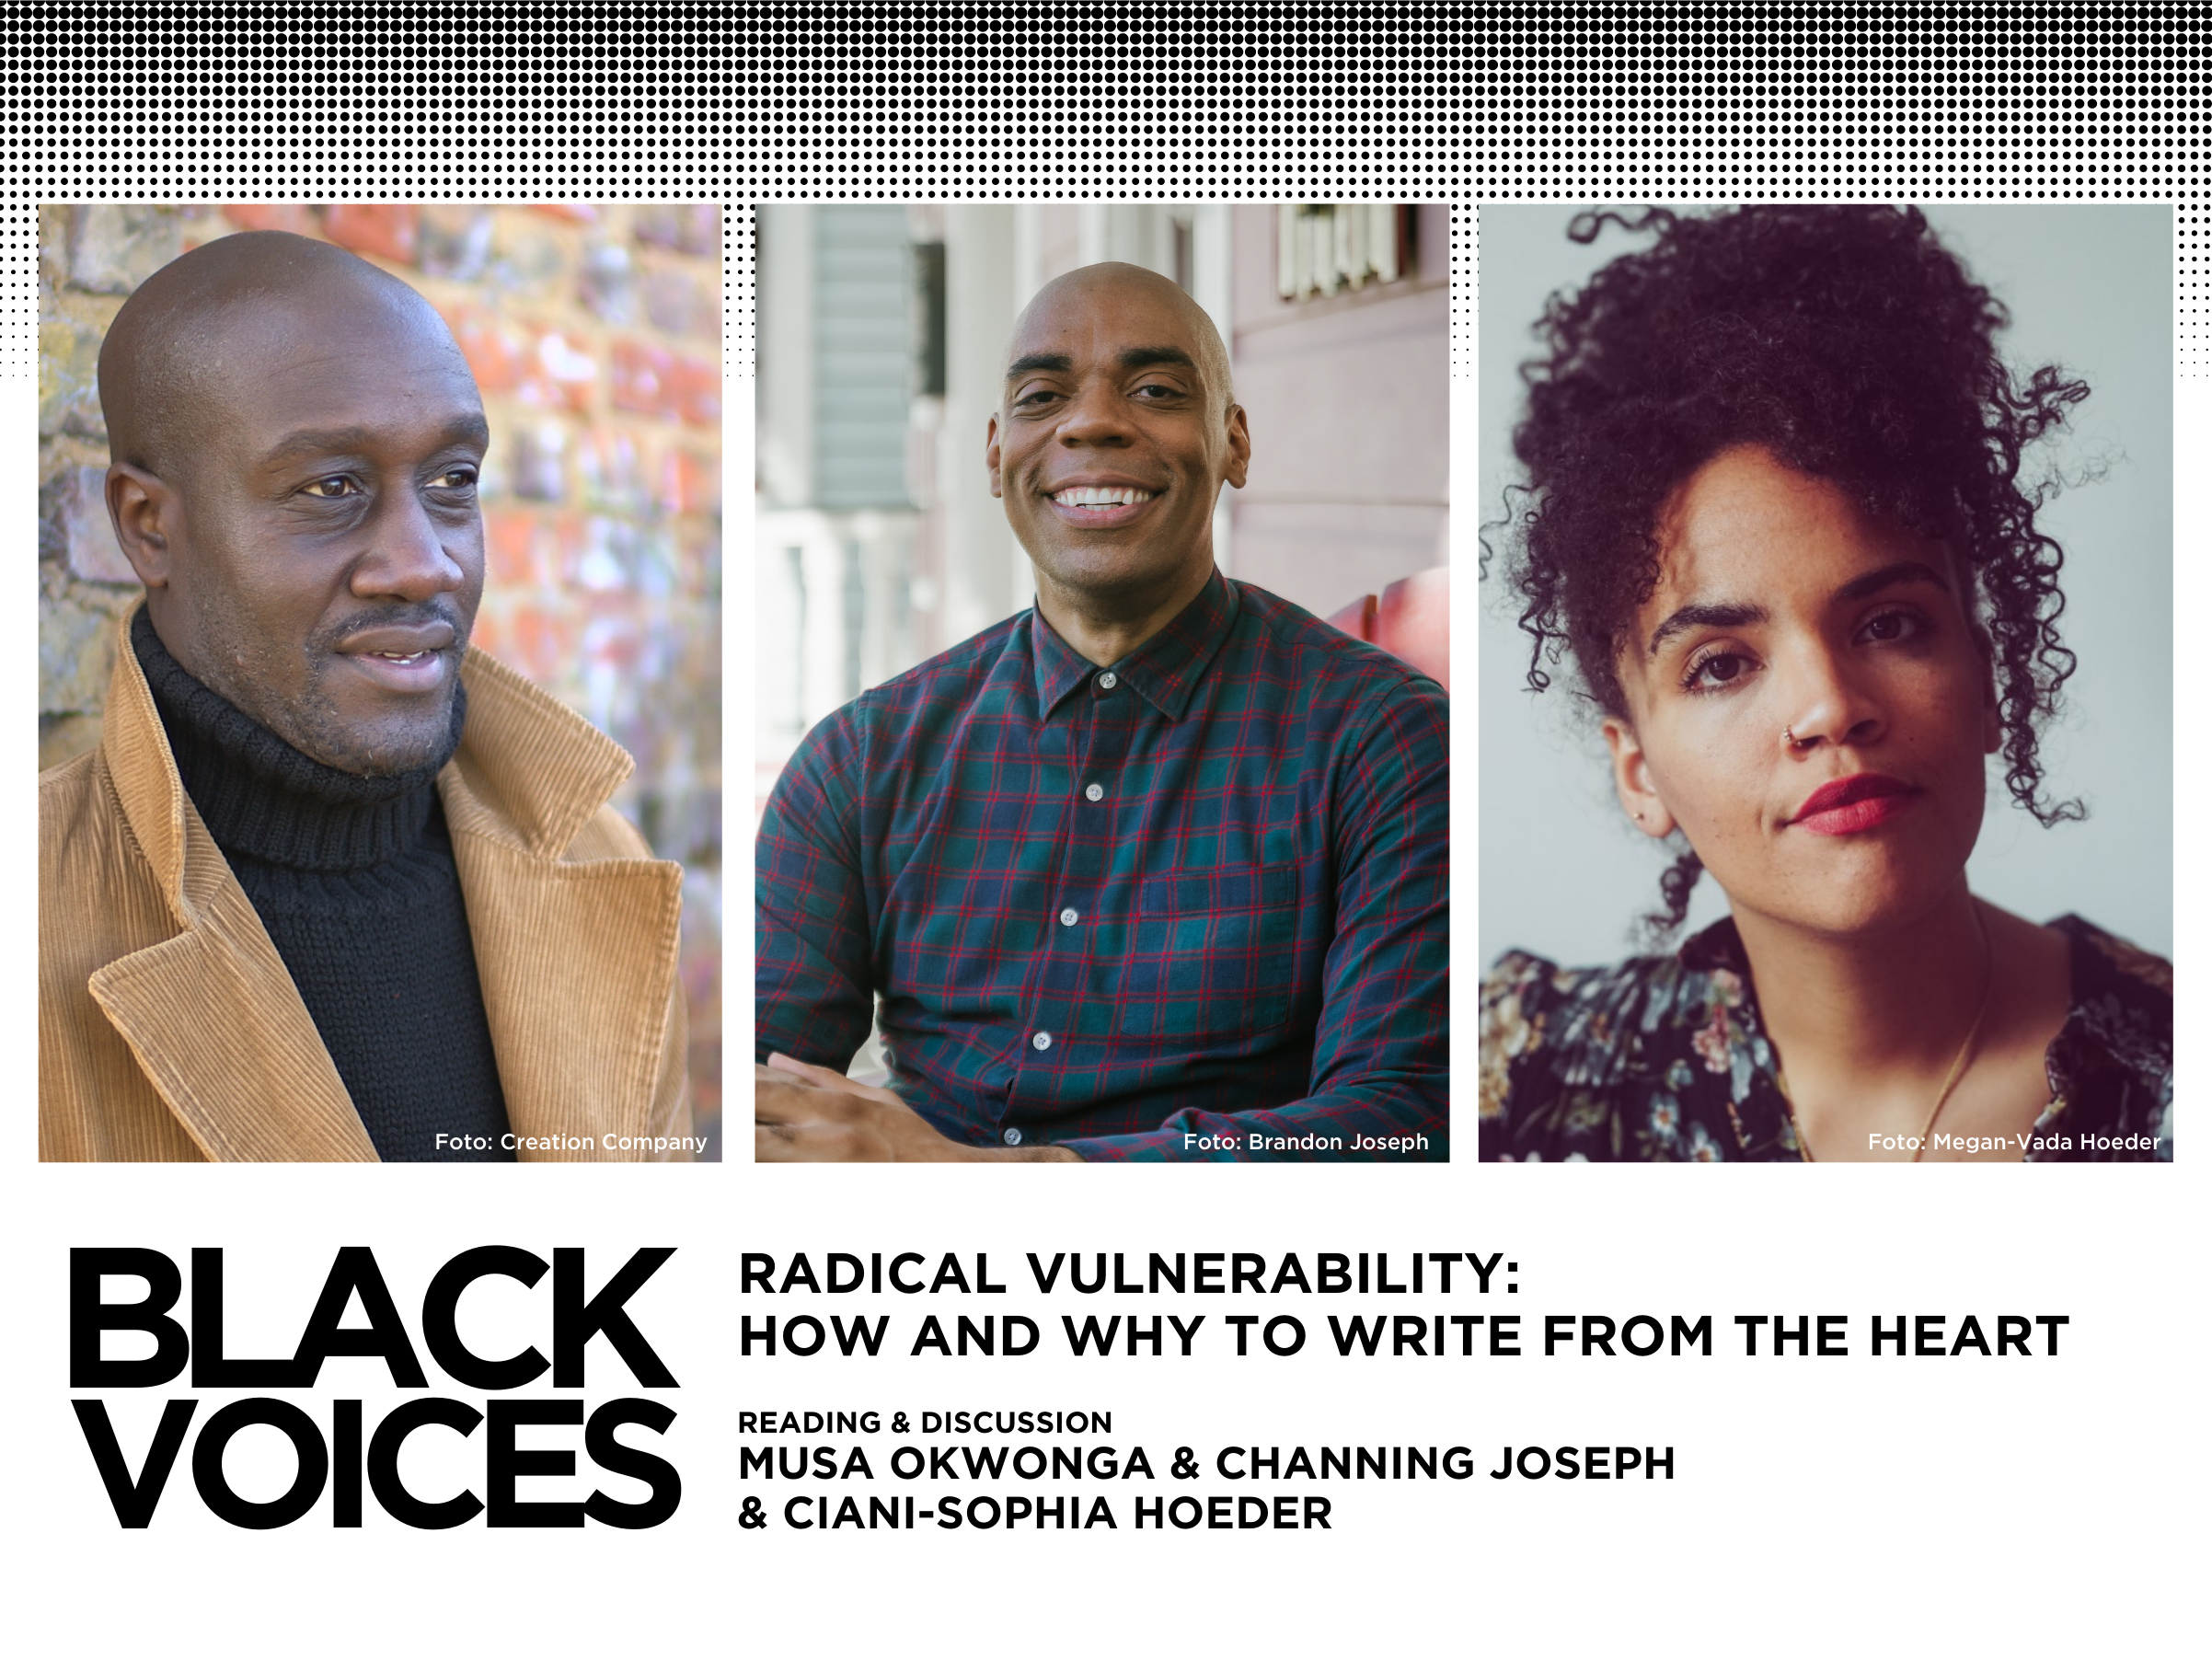 Black Voices: Reading+Discussion with Channing Joseph, Musa Okwonga & Ciani-Sophia Hoeder